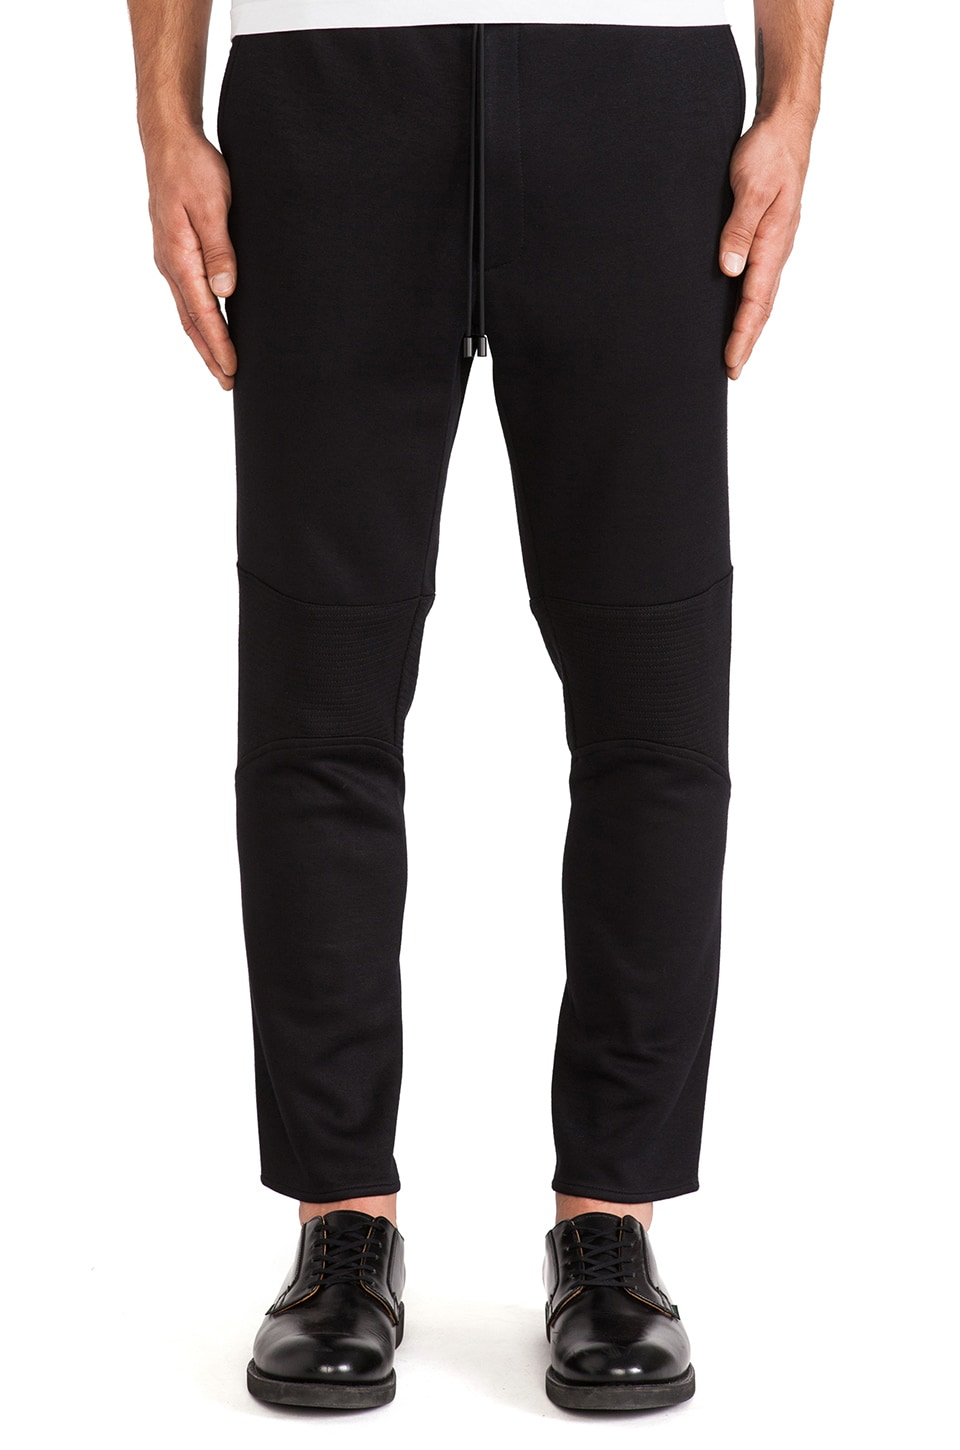 Public School Trapunto Pant in Black